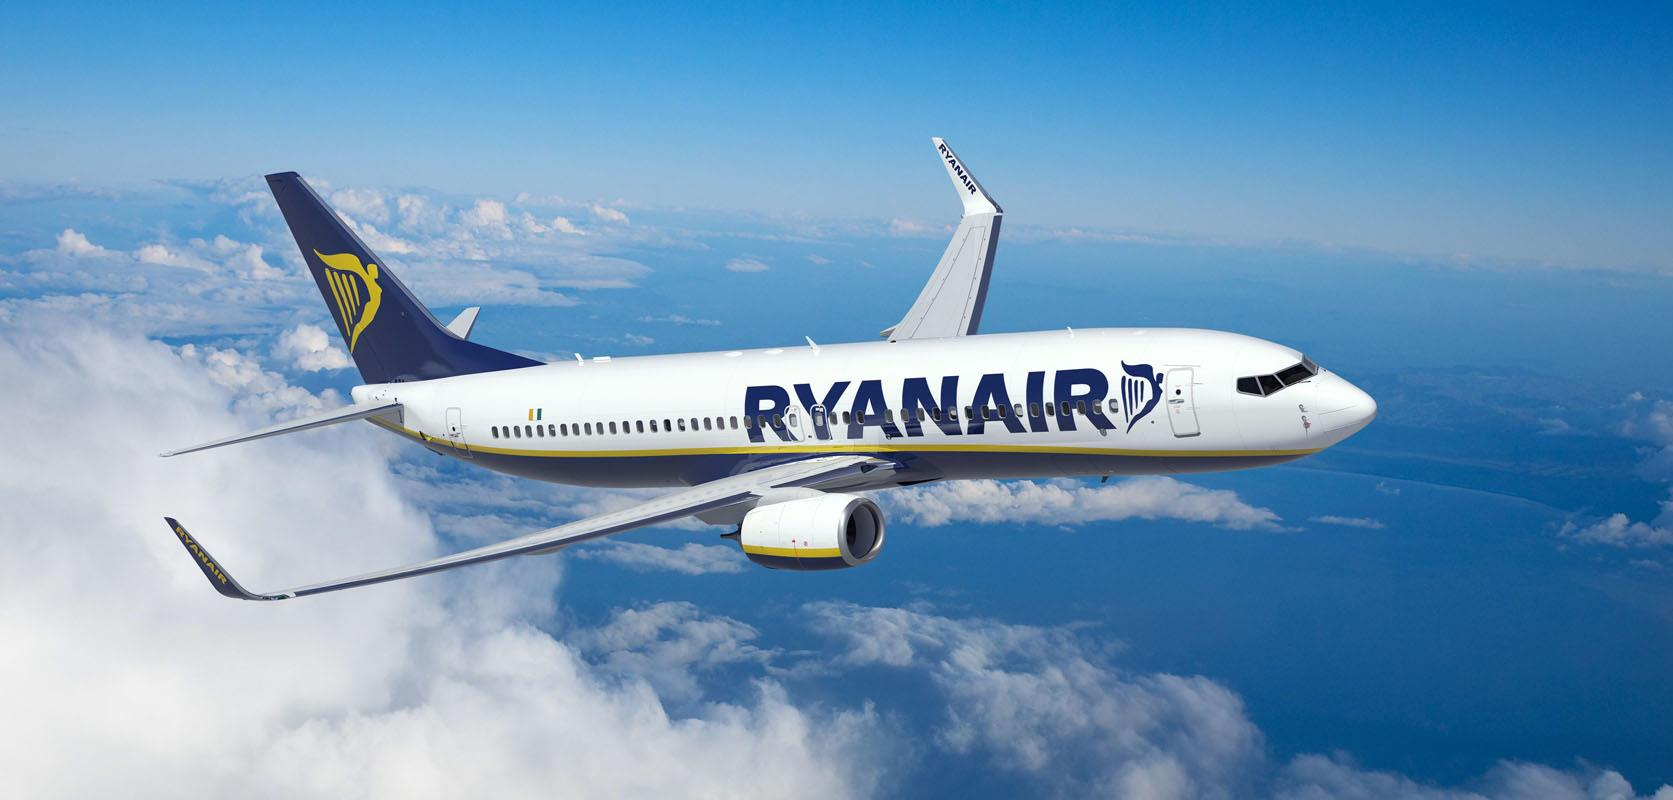 Airport set to be Ryanair's fastest growing European base